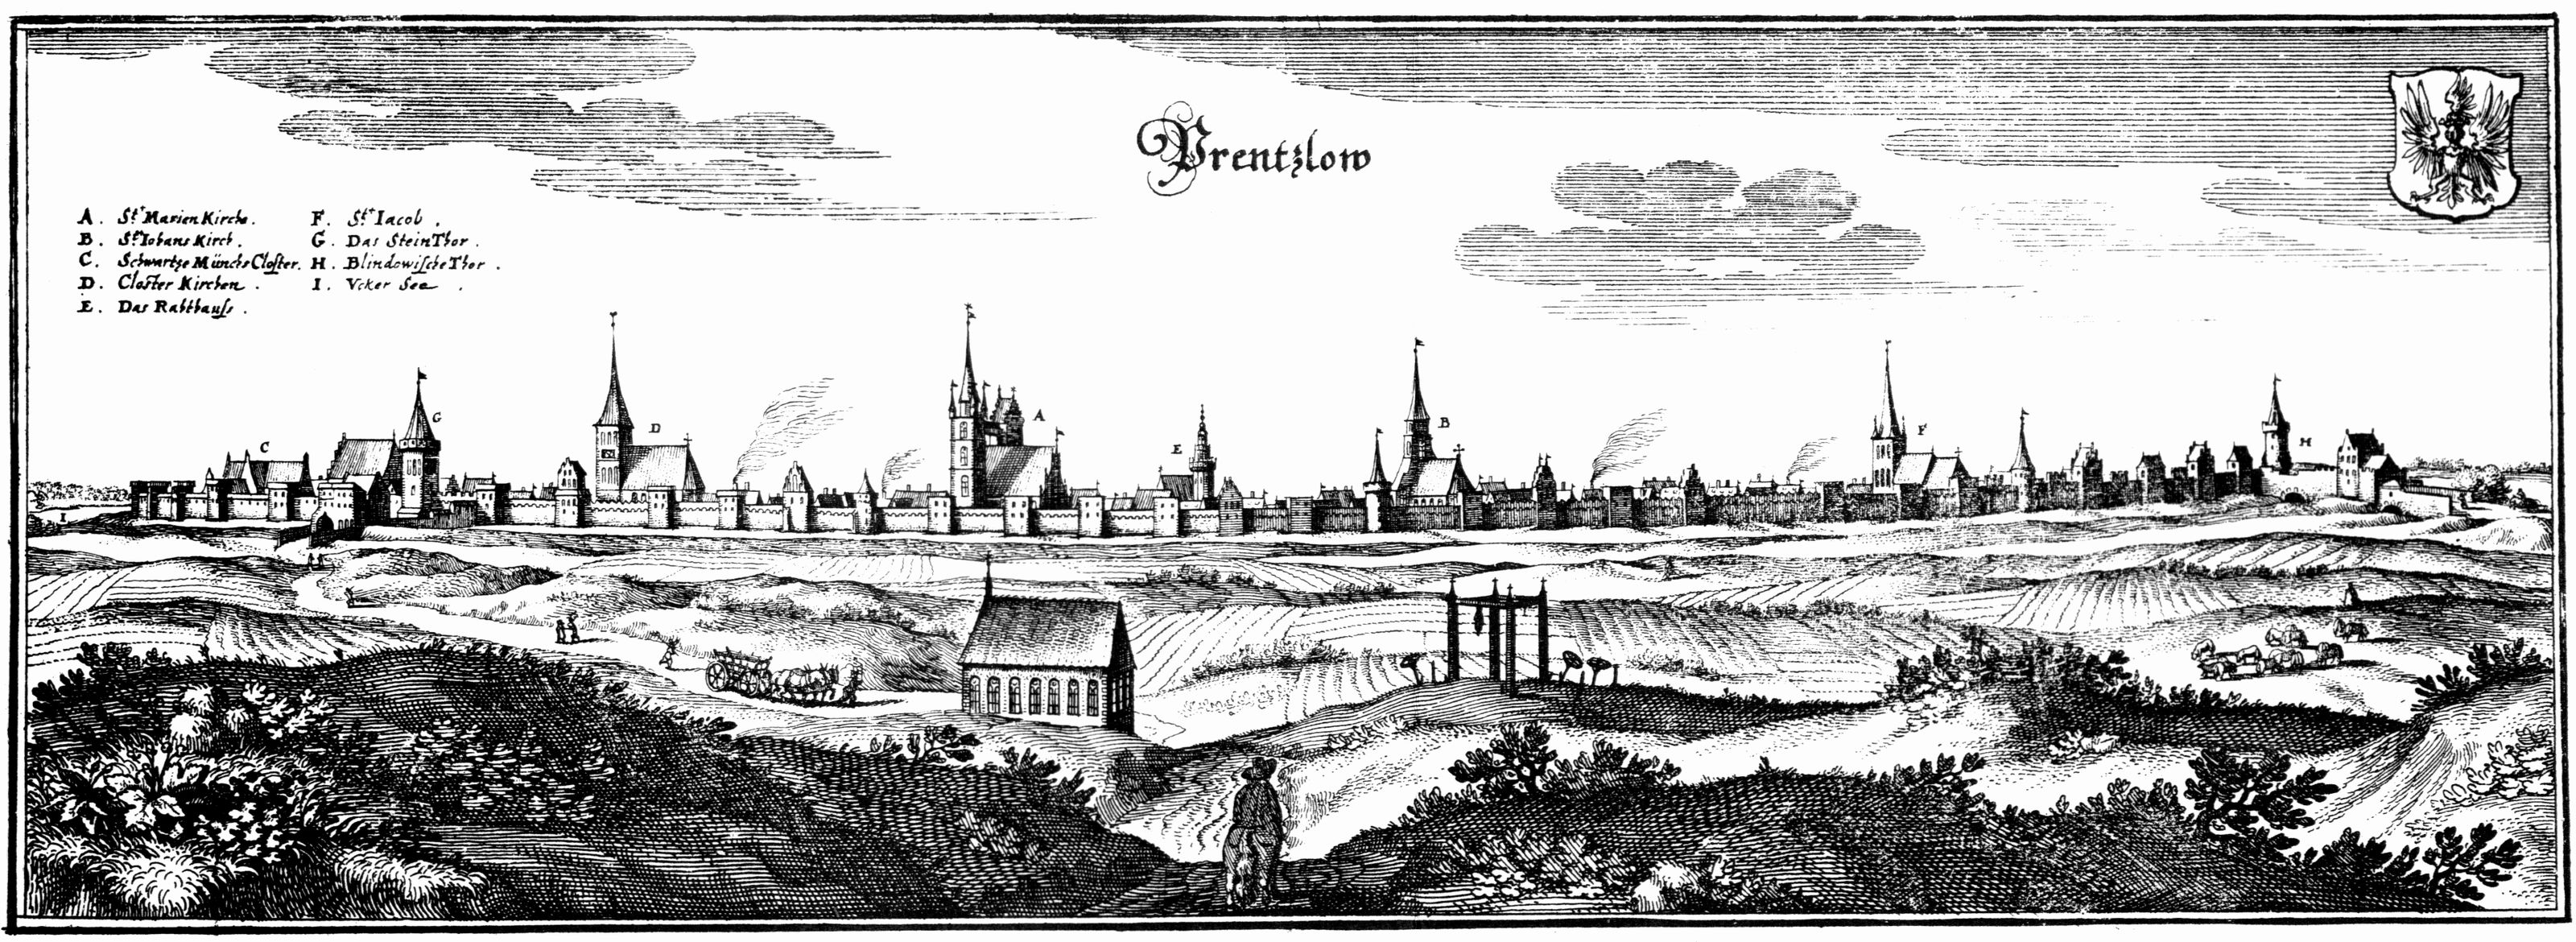 https://upload.wikimedia.org/wikipedia/commons/f/f3/Prenzlau-1652-Merian.jpg